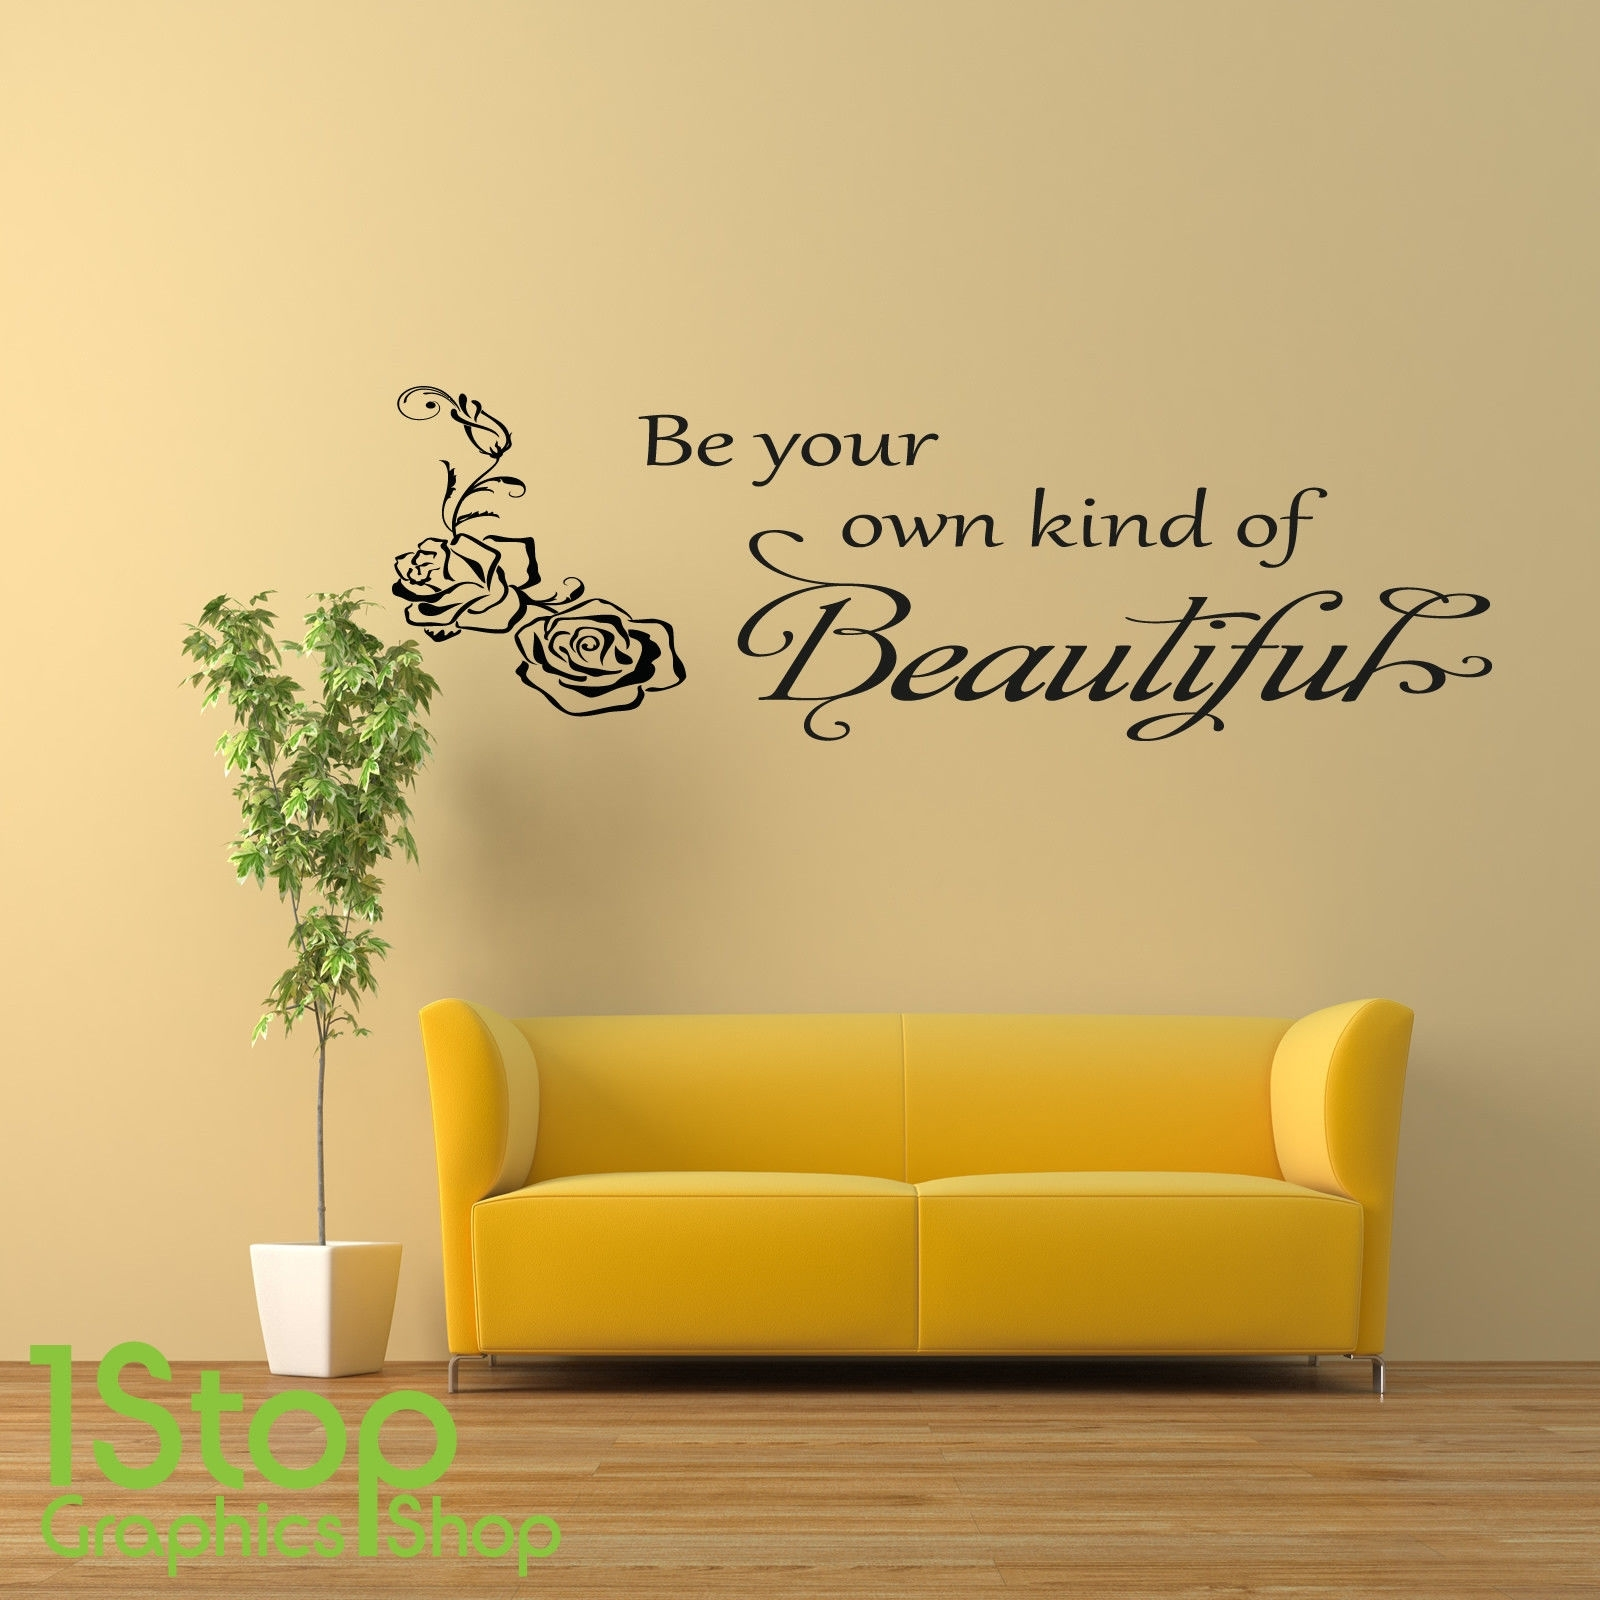 Be Your Own Kind Of Beautiful Wall Sticker Quote – Lounge Wall Art With Most Recently Released Be Your Own Kind Of Beautiful Wall Art (View 10 of 15)